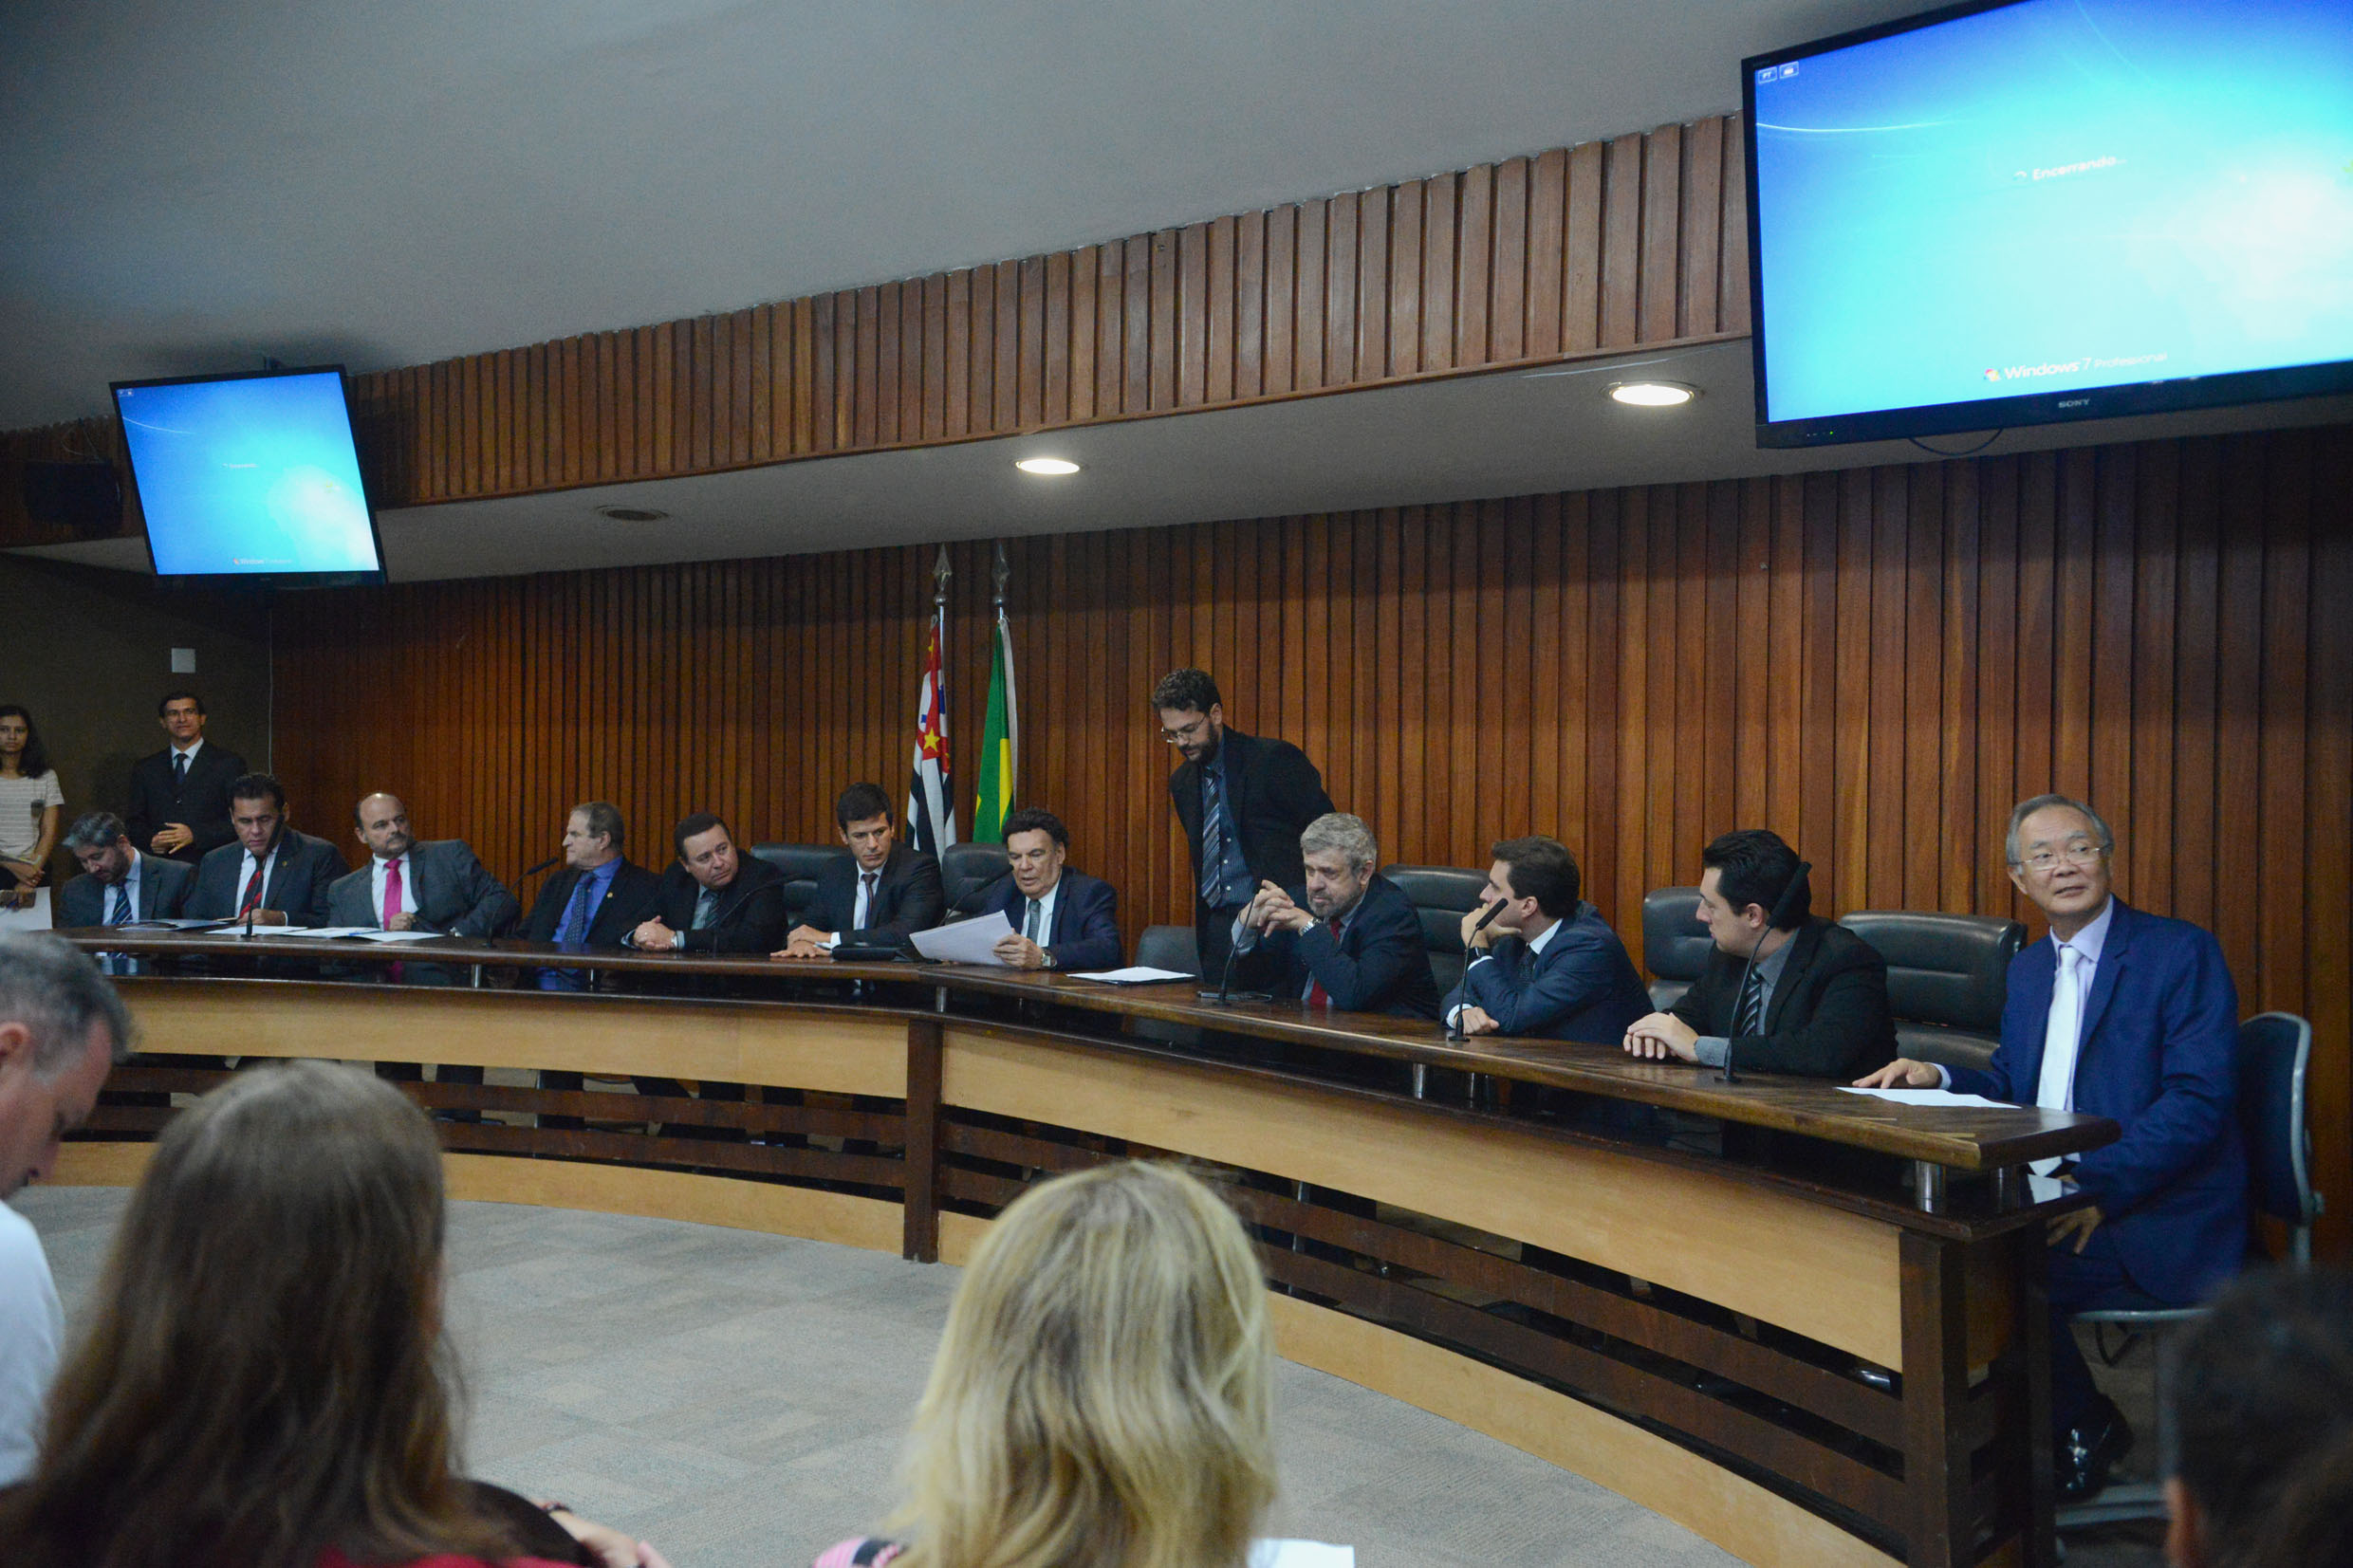 Parlamentares na comissão<a style='float:right' href='https://www3.al.sp.gov.br/repositorio/noticia/N-04-2019/fg232923.jpg' target=_blank><img src='/_img/material-file-download-white.png' width='14px' alt='Clique para baixar a imagem'></a>